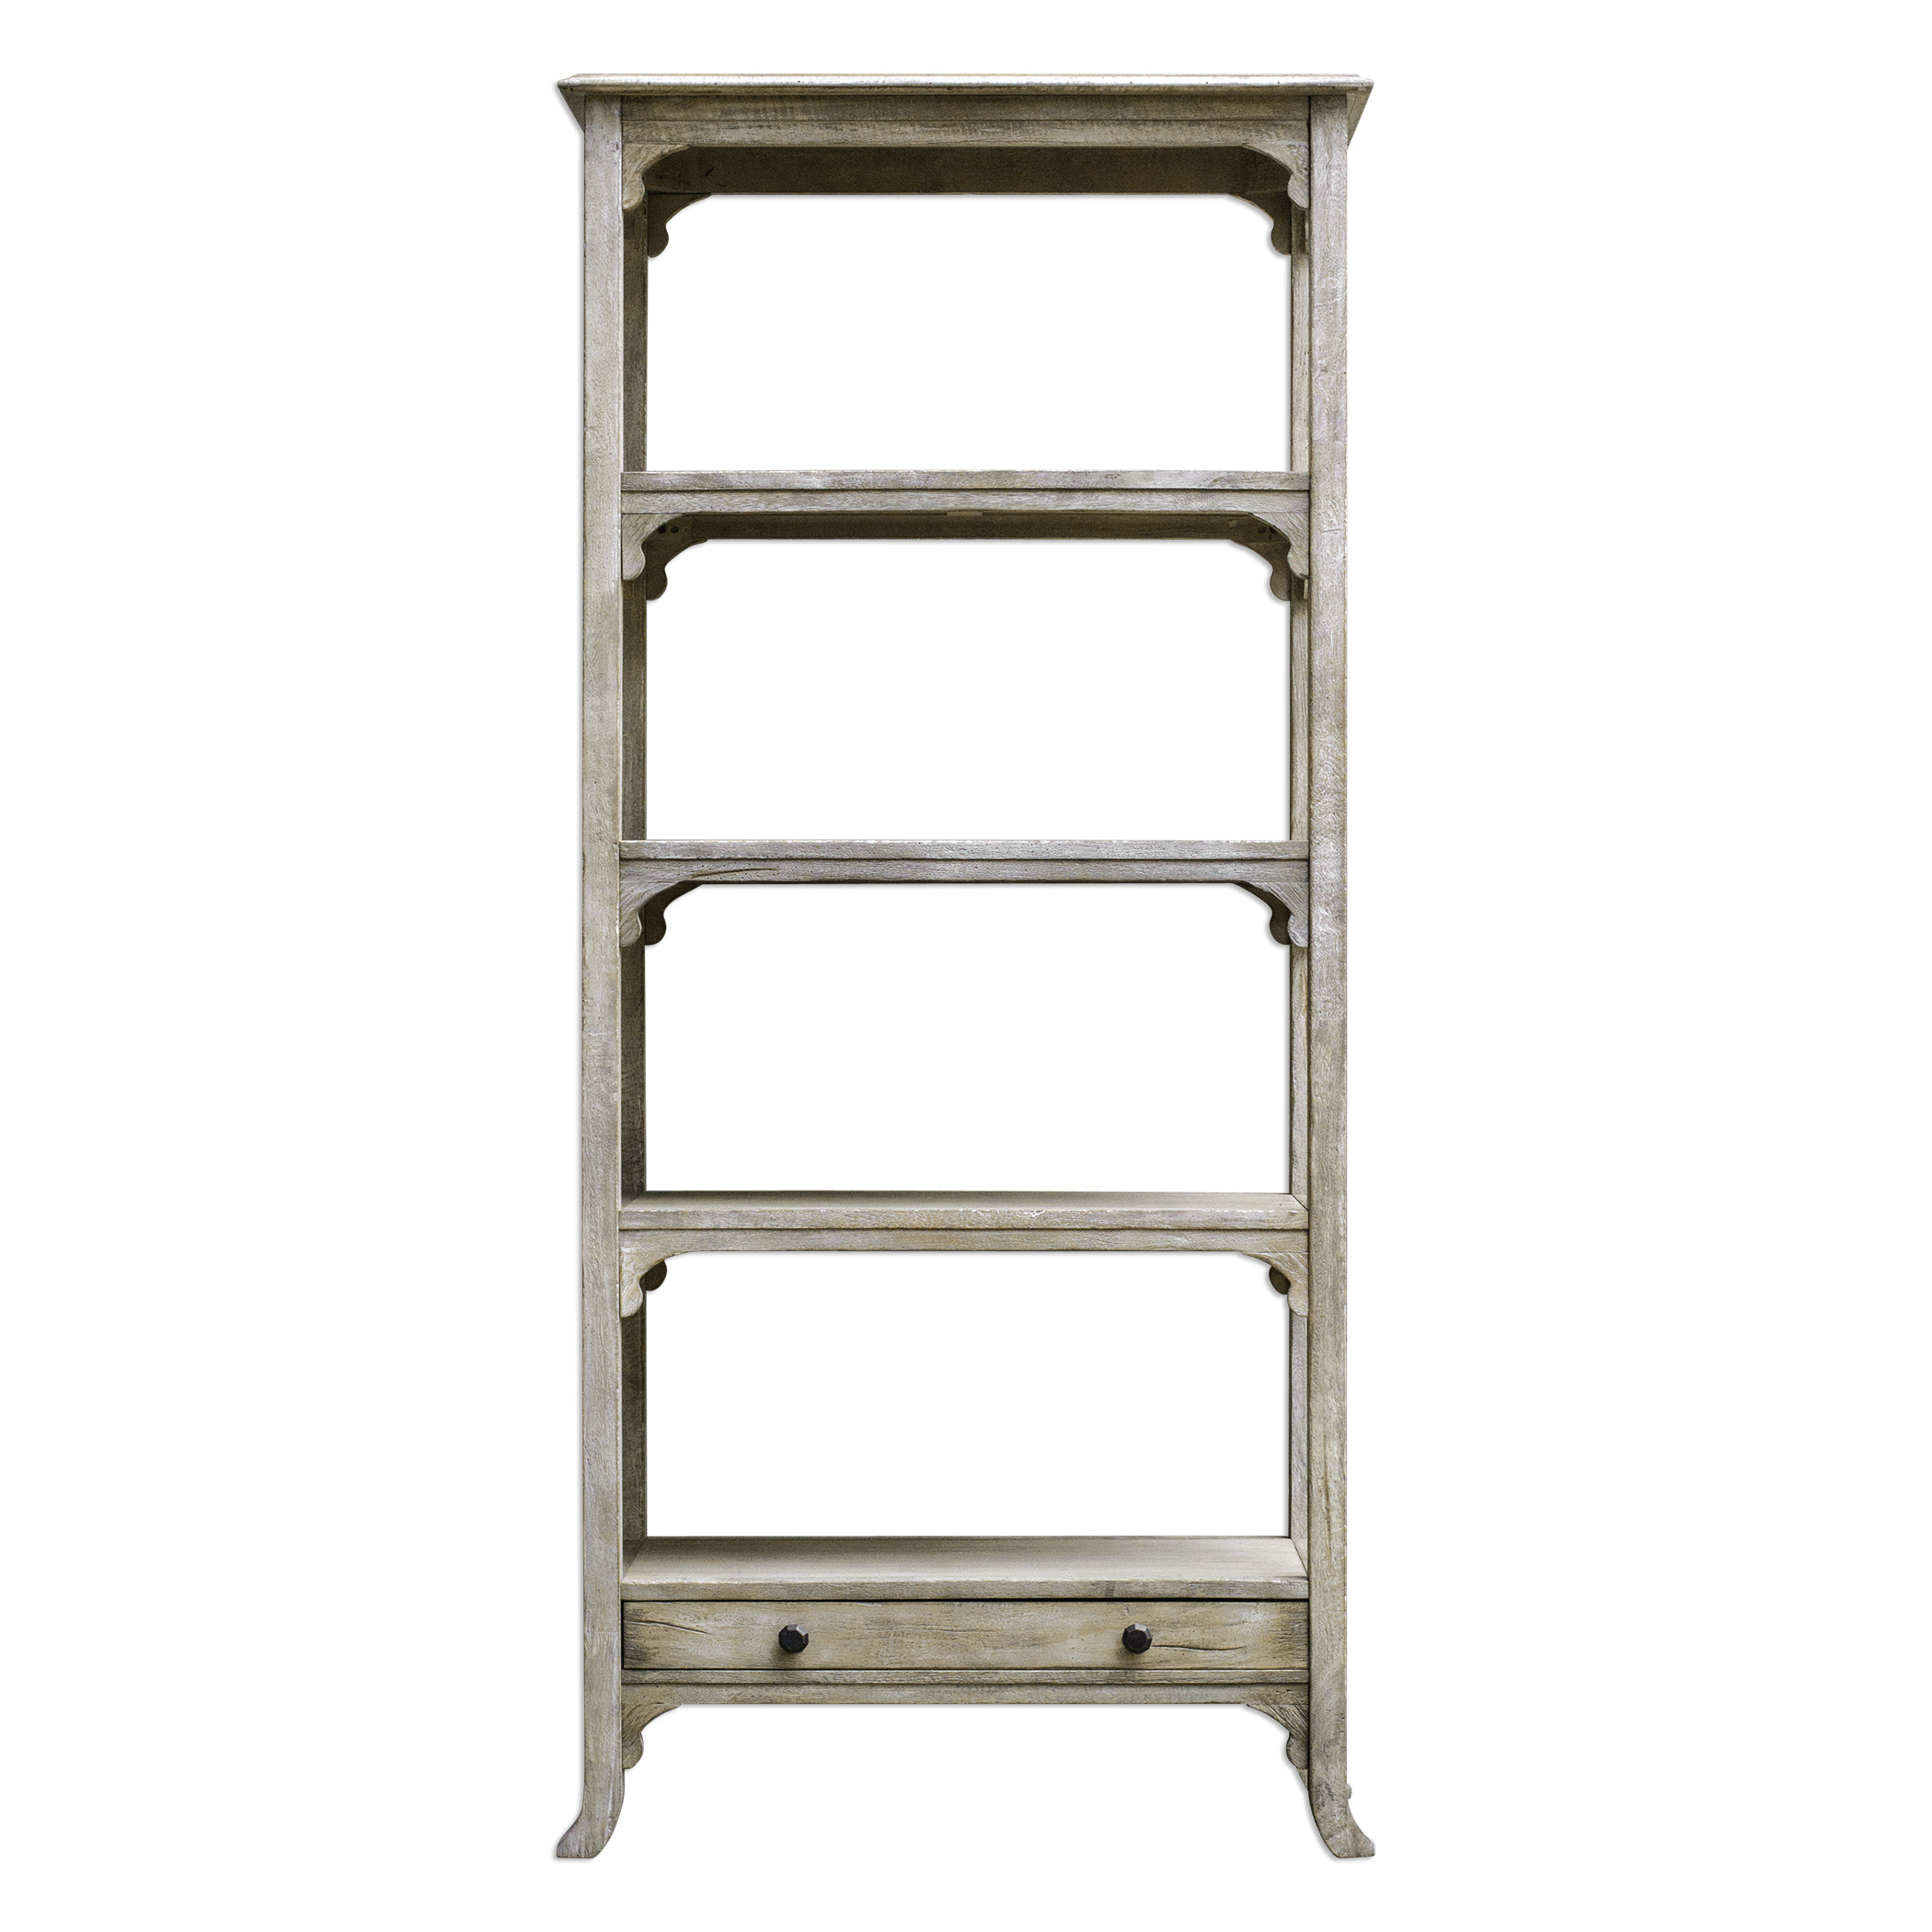 Uttermost Accent Furniture Bridgely Aged White Etagere - Item Number: 25661